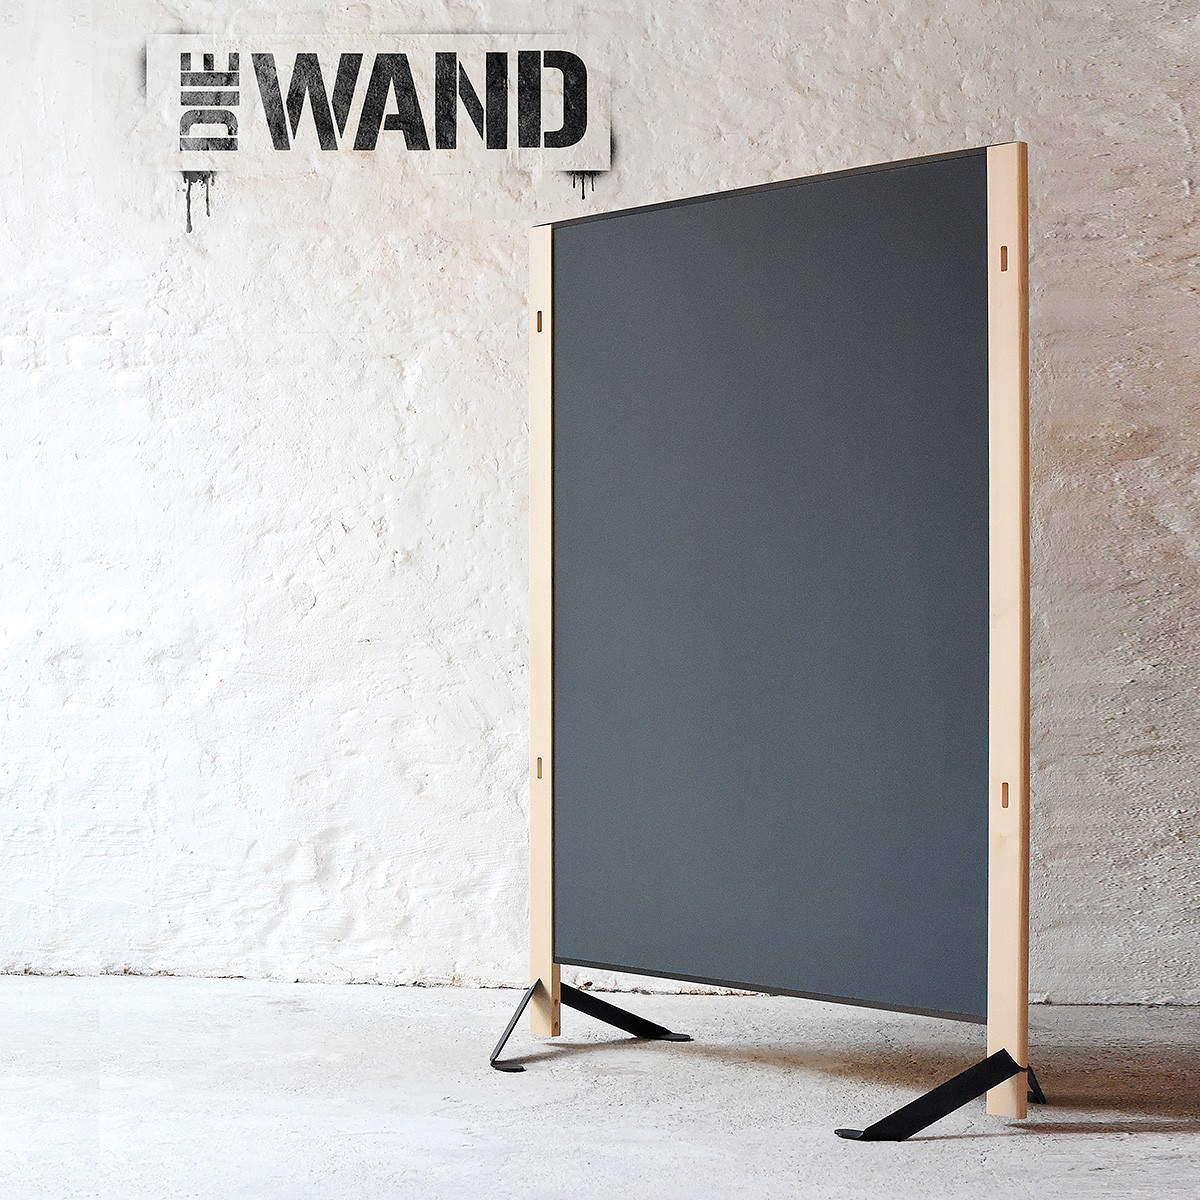 neuland ag die wand pinwand sortiment pinw nde. Black Bedroom Furniture Sets. Home Design Ideas